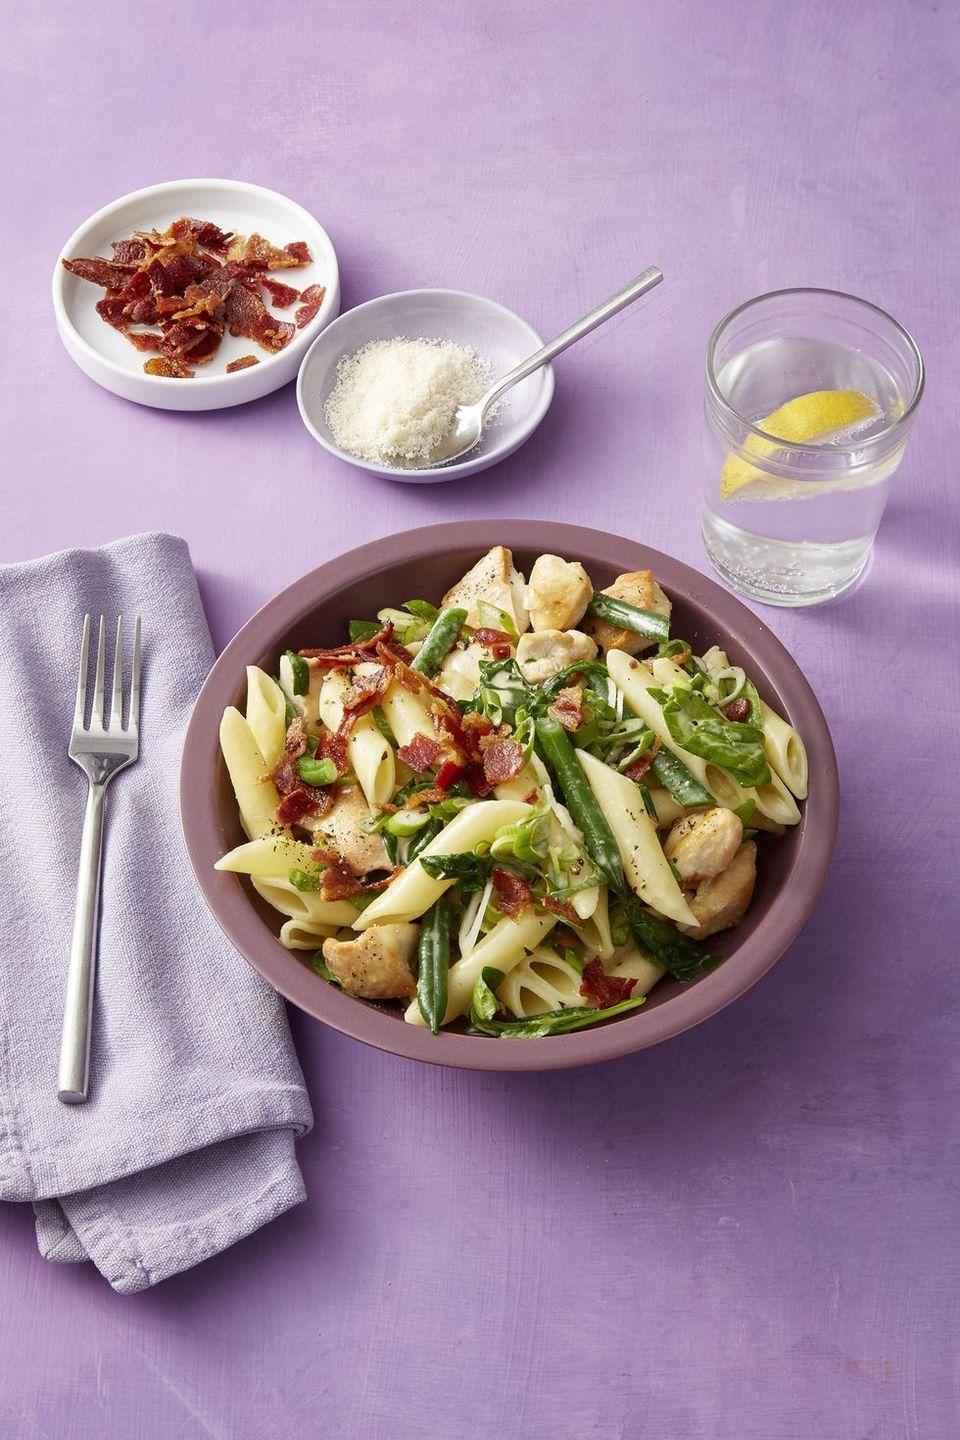 """<p>The perfect side dish to bring to any BBQ. It'll only take 25 minutes to make, and the clean up is a breeze.</p><p><em><a href=""""https://www.womansday.com/food-recipes/food-drinks/a19133143/chicken-green-bean-and-bacon-pasta-recipe/"""" rel=""""nofollow noopener"""" target=""""_blank"""" data-ylk=""""slk:Get the Chicken, Green Bean, and Bacon Pasta recipe."""" class=""""link rapid-noclick-resp""""> Get the Chicken, Green Bean, and Bacon Pasta recipe. </a></em></p>"""